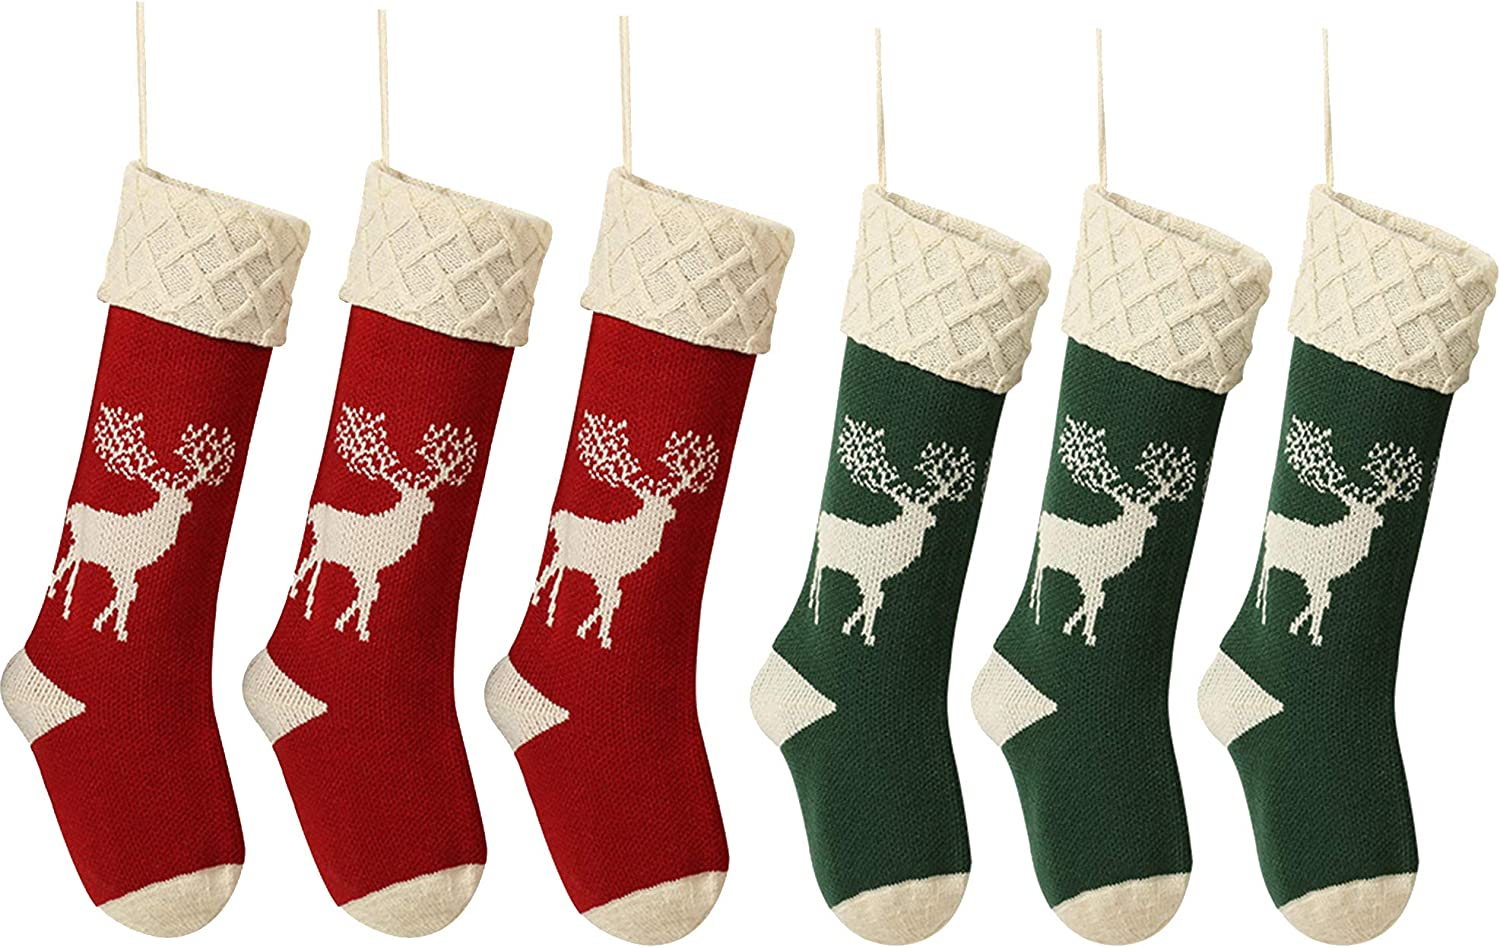 QIMENG Reindeer Houston Mall Christmas Stockings 2021 model Red and Green 6 Lar Pack 18